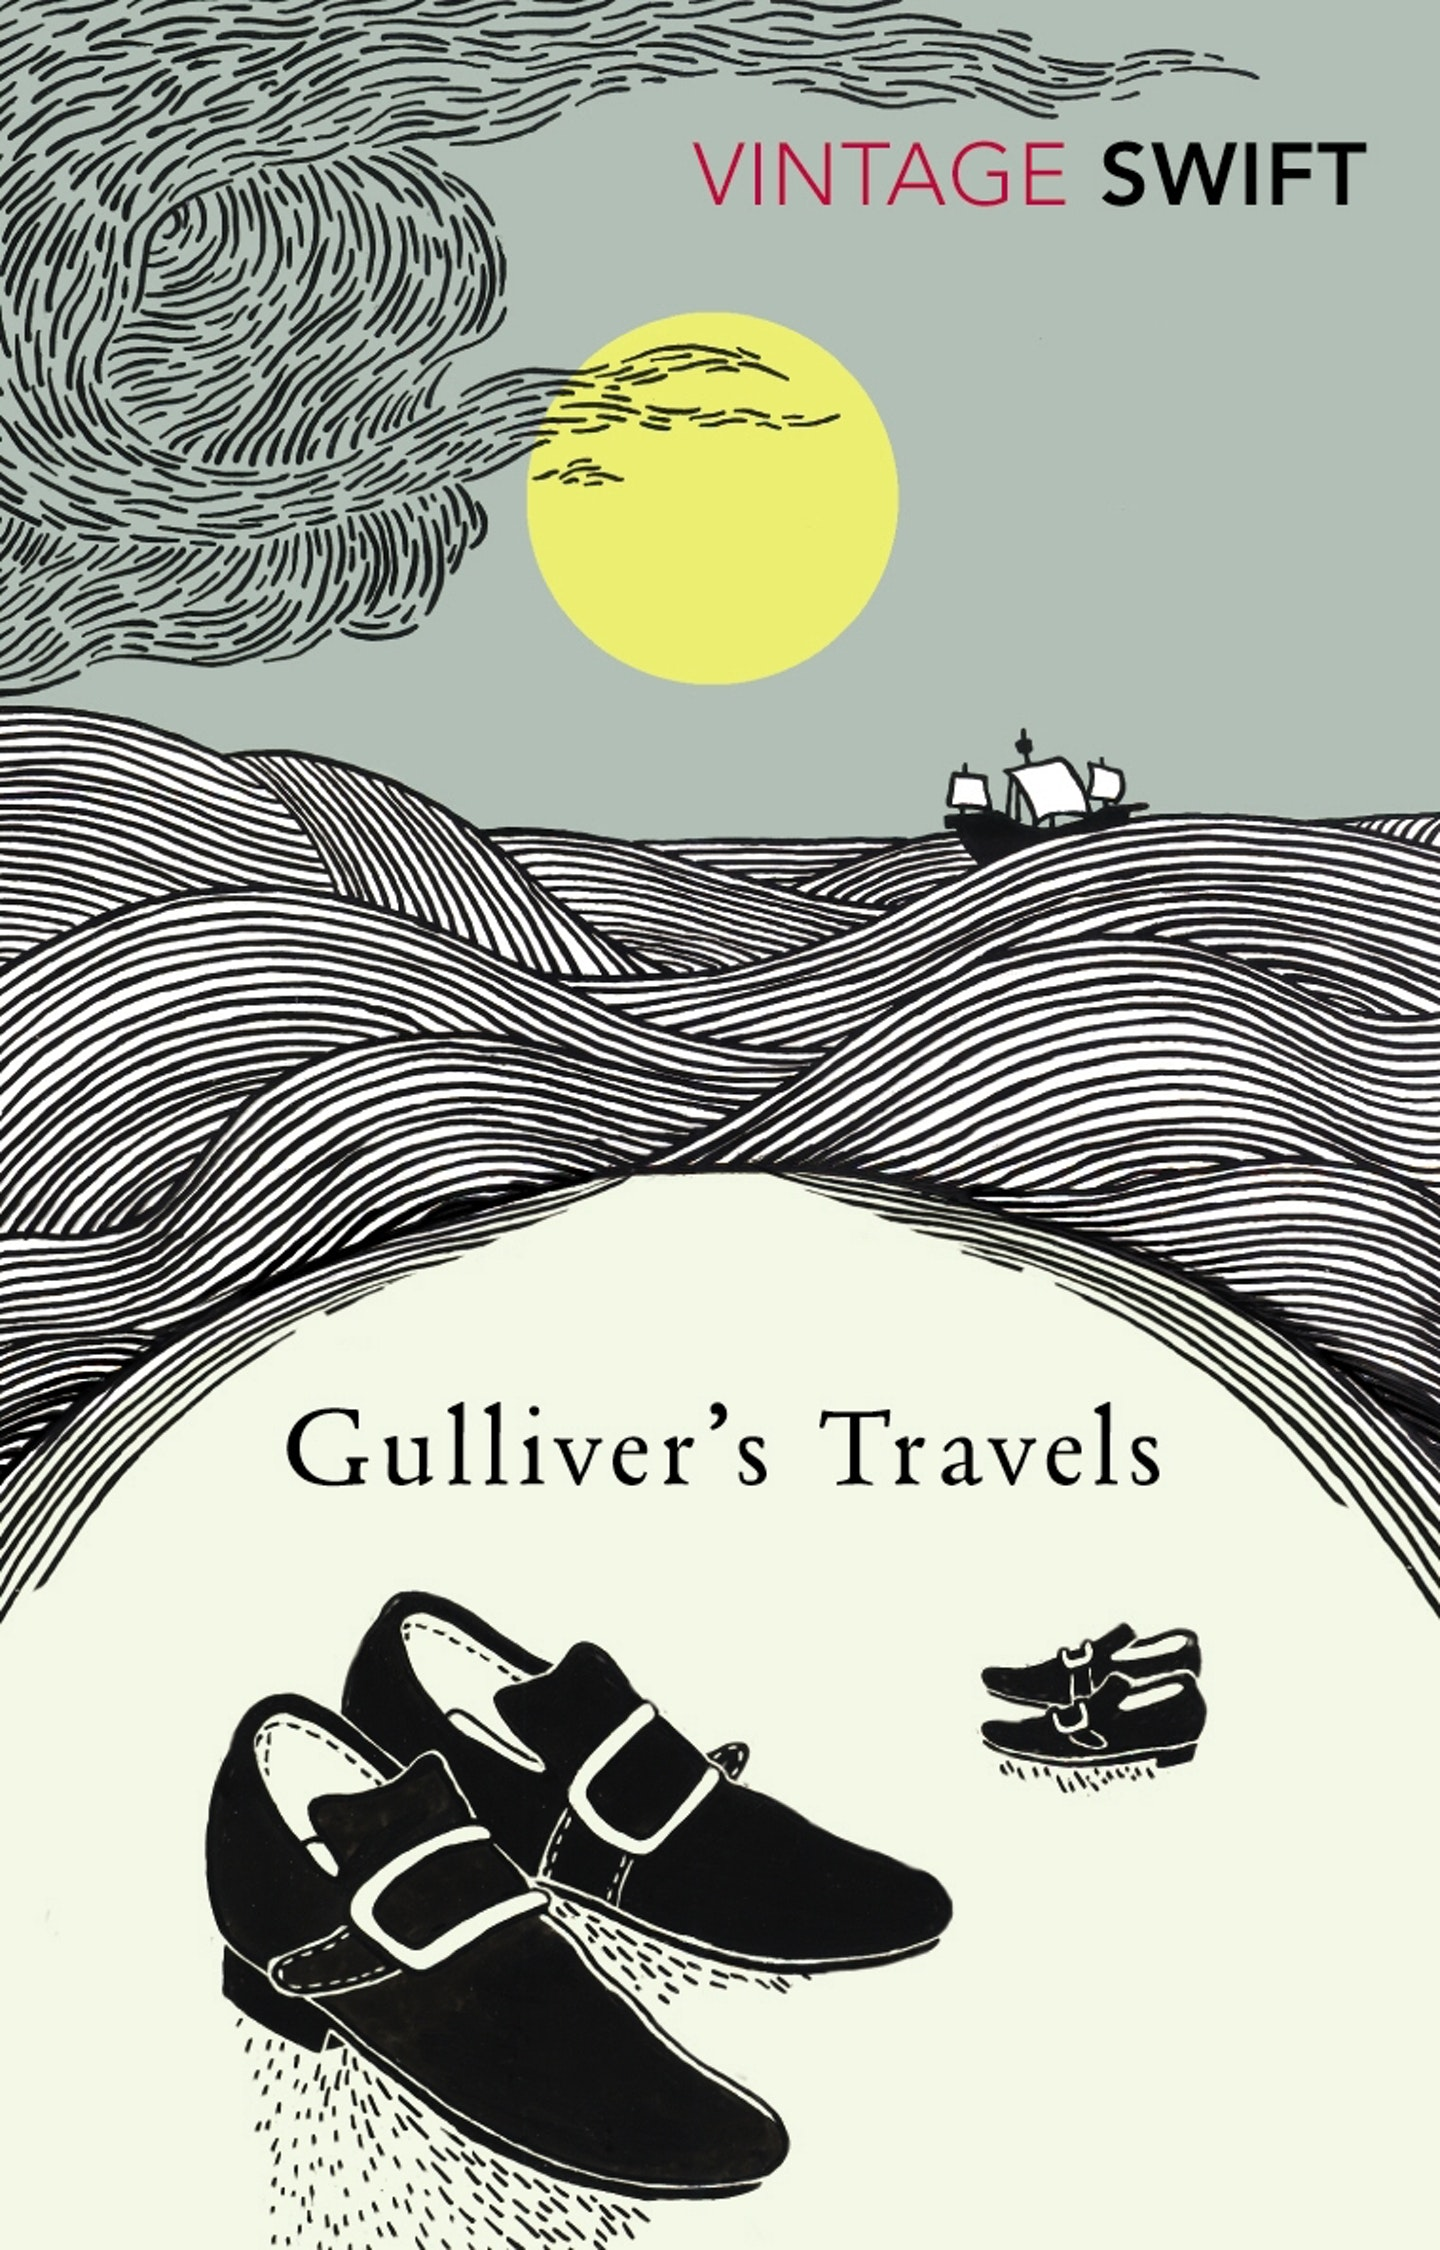 use satire jonathan swift s gulliver s travels Download citation on researchgate | a study of satire in jonathan's swift gulliver's travels | most of the works of literature contain the writers' ideas including their social criticism to .